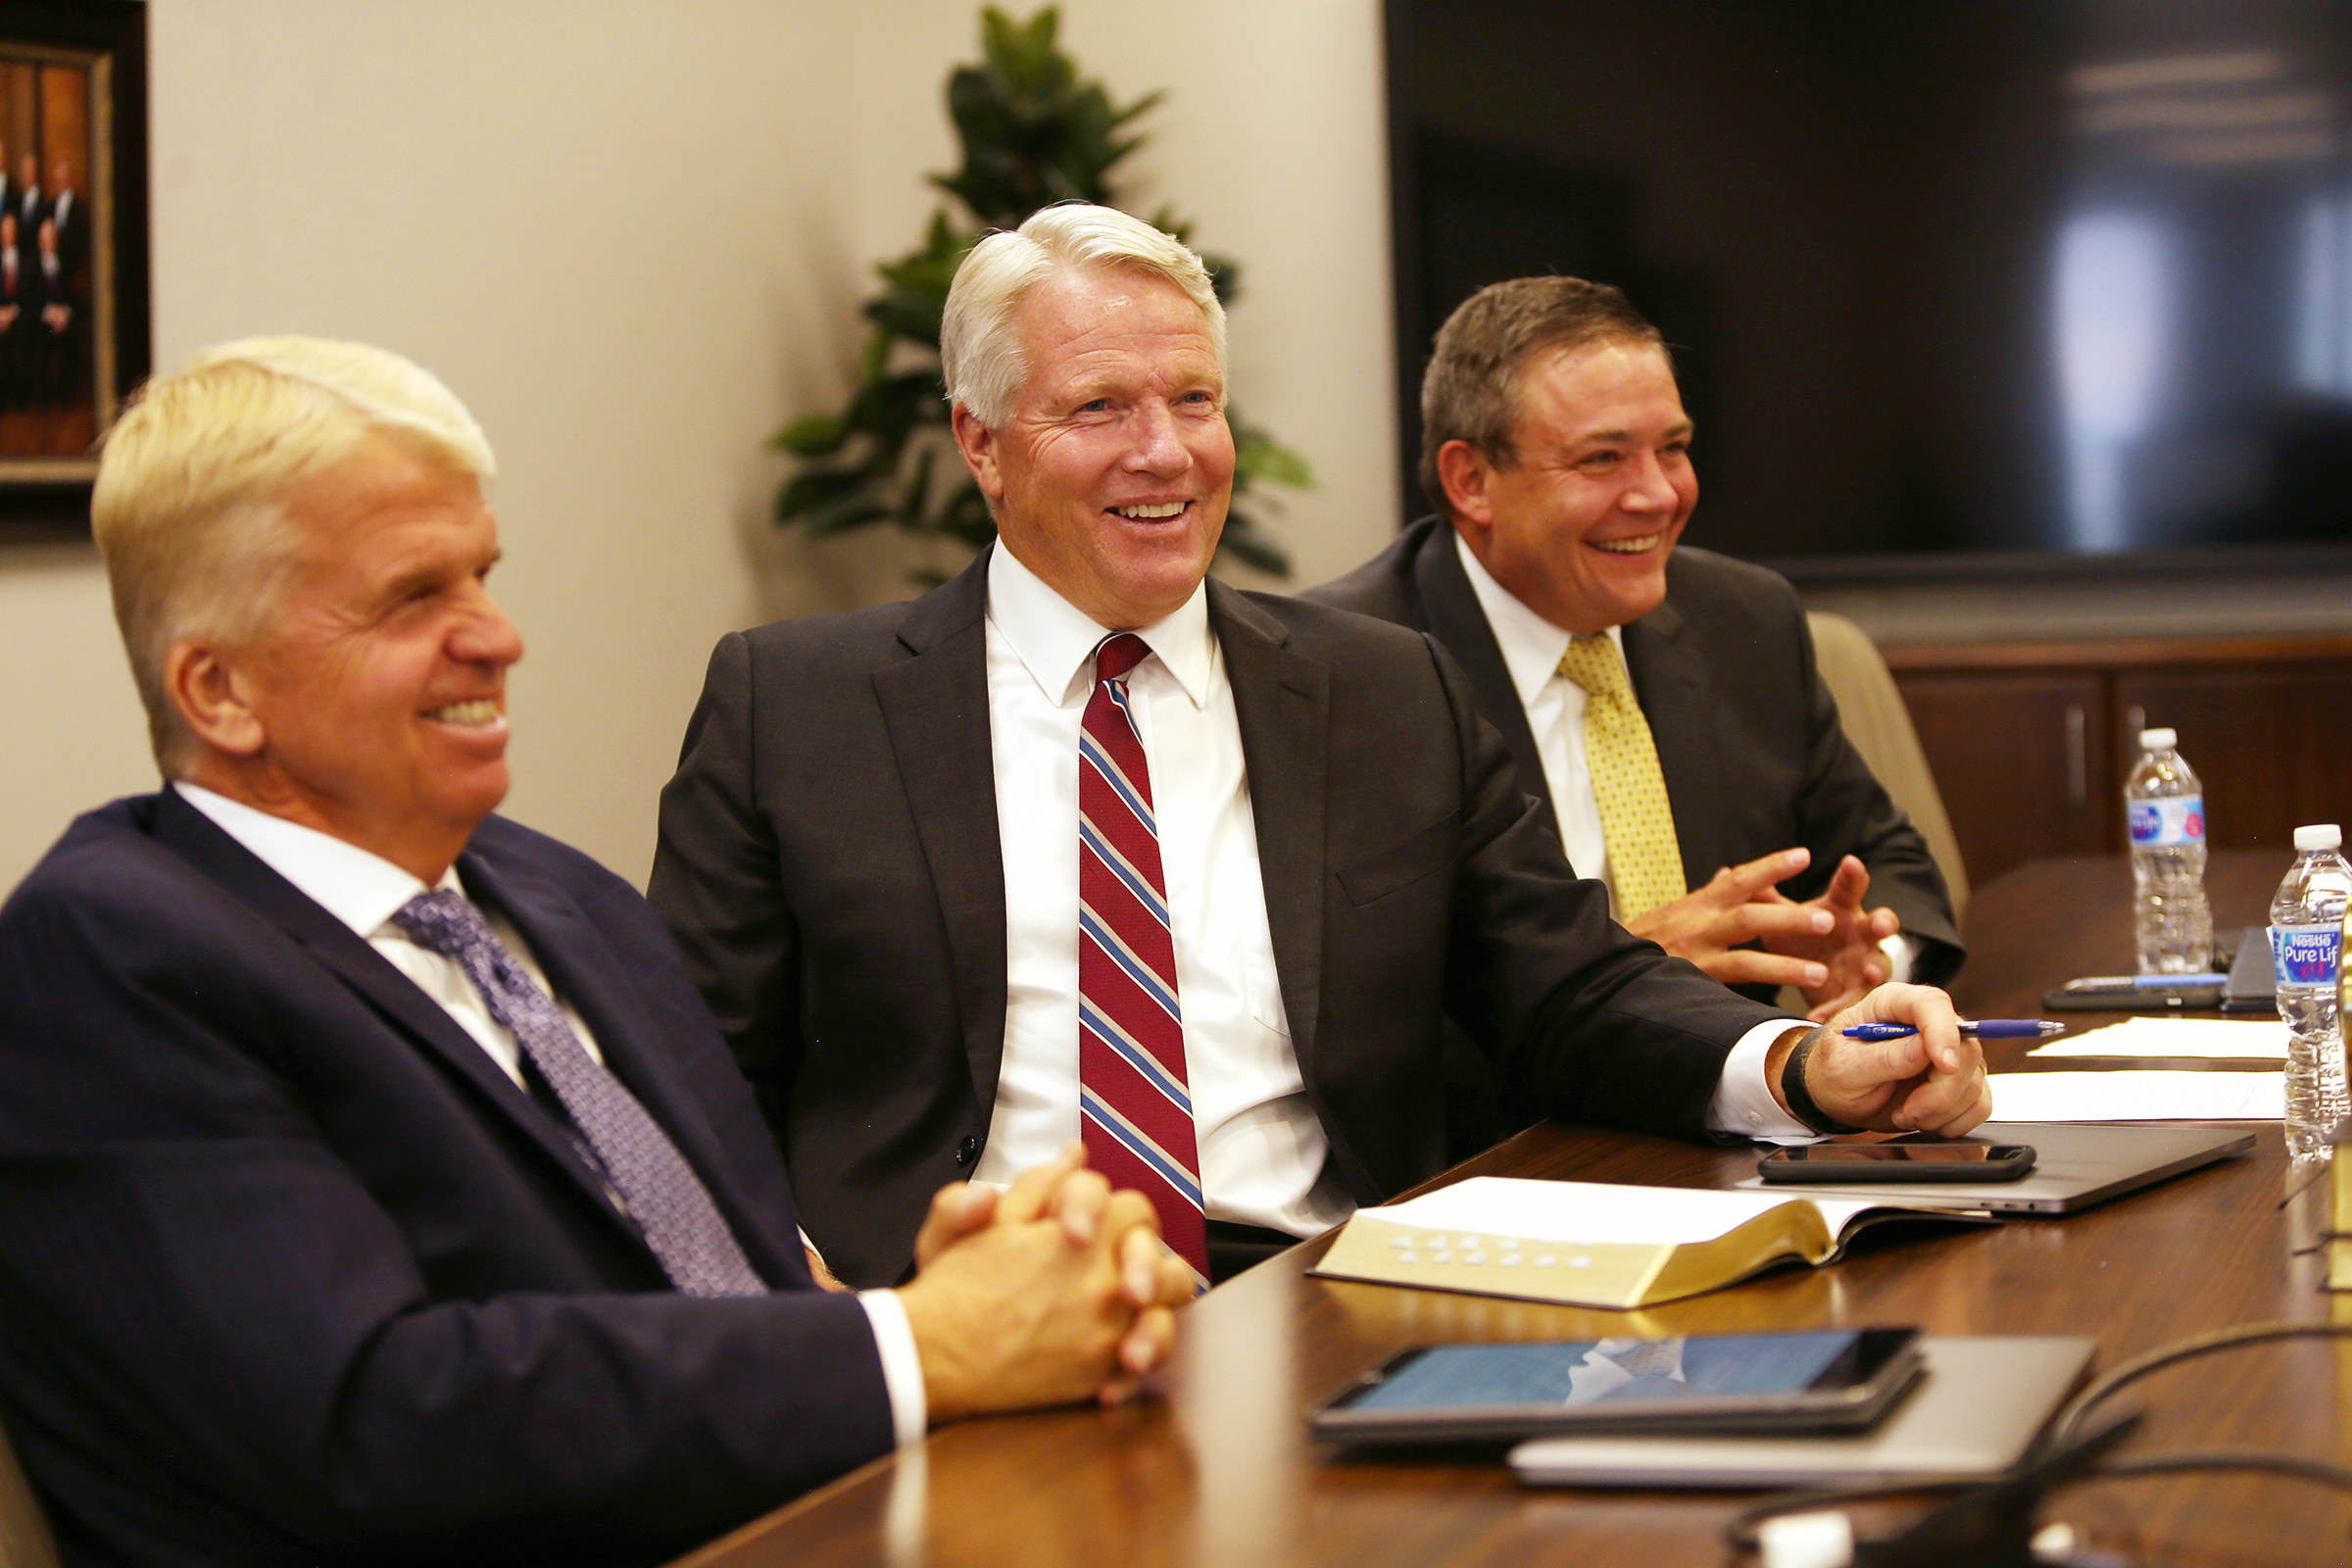 Brother Stephen W. Owen, Brother Douglas D. Holmes and Brother M. Joseph Brough of the Young Men general presidency, enjoy a light moment as they talk with the Young Women general presidency about the development of the 2020 youth theme Tuesday, Aug. 20, 2019, at the Church Office Building in Salt Lake City.